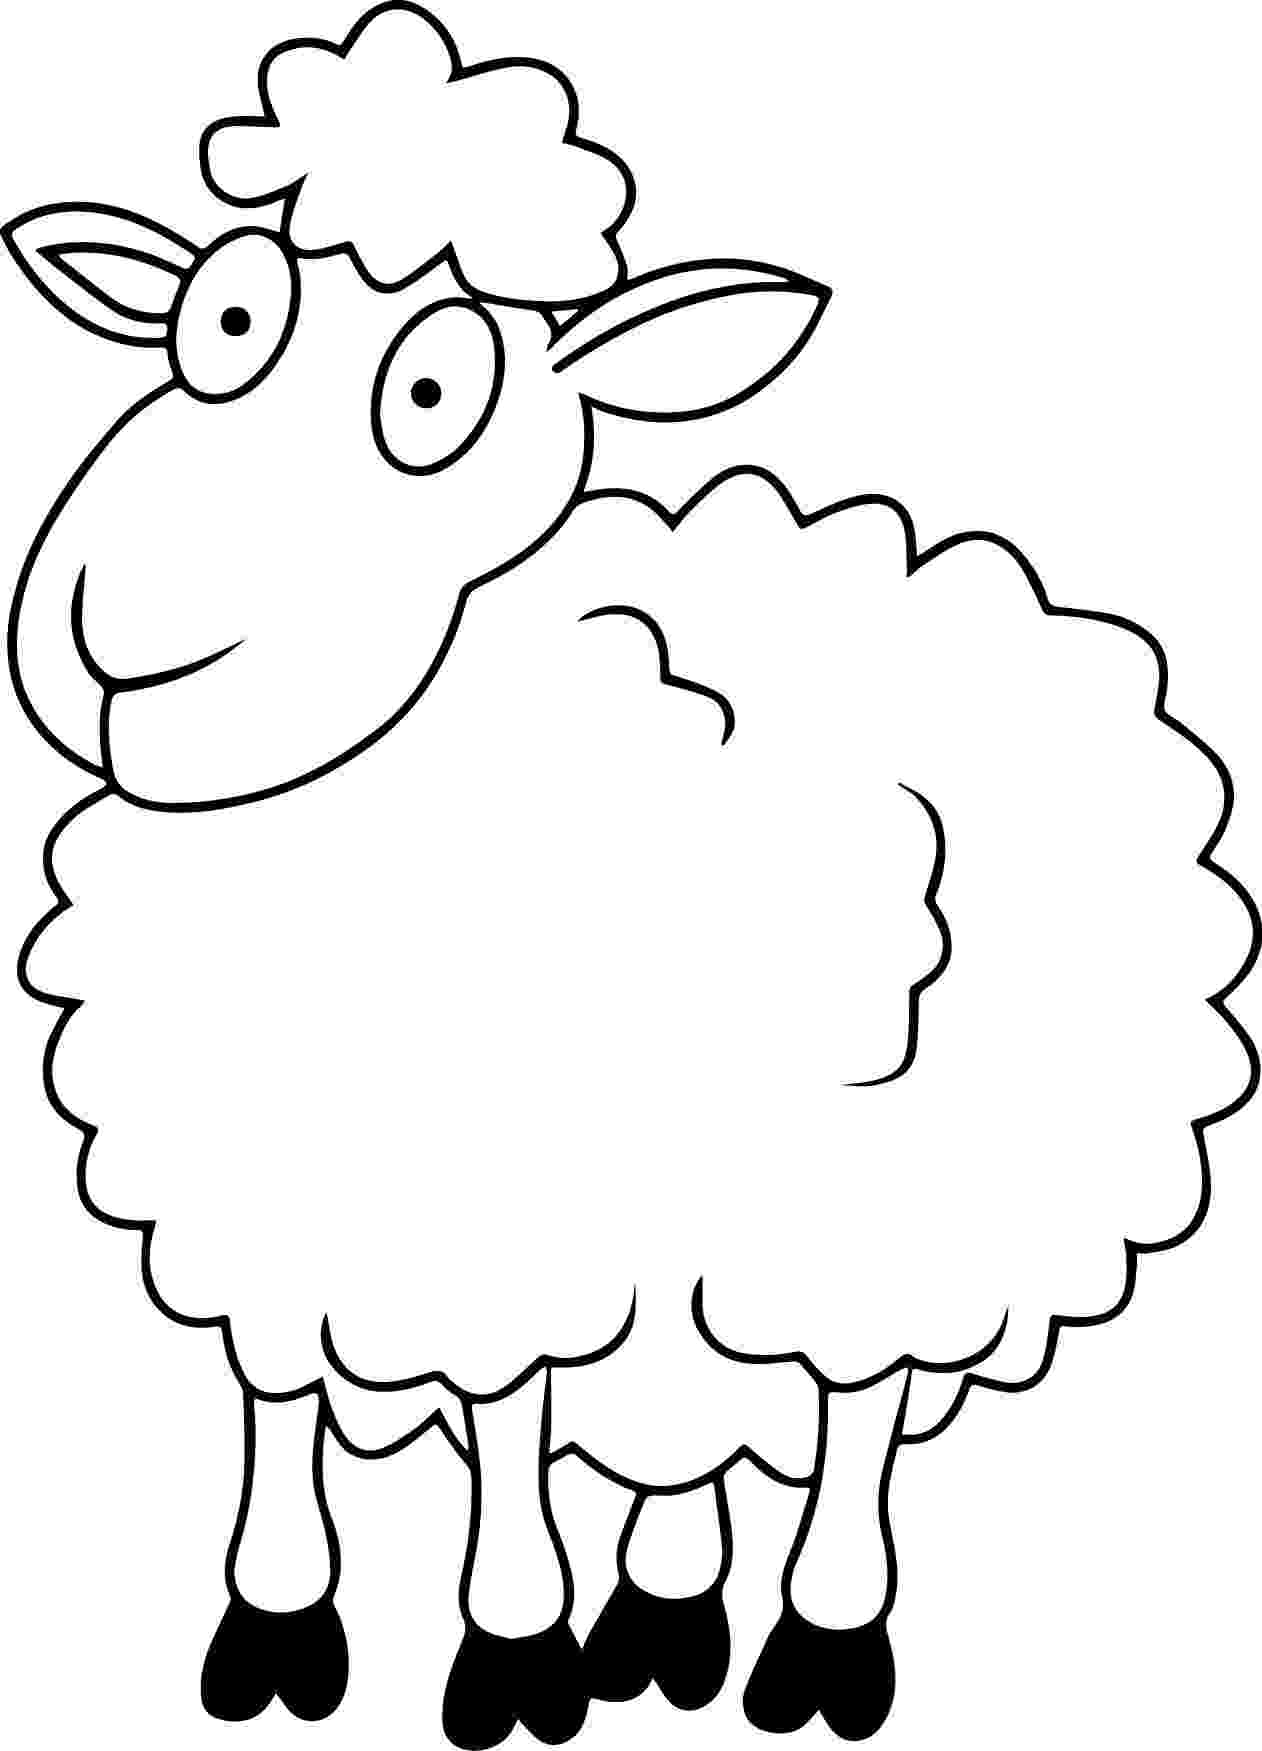 sheep coloring sheet free printable sheep coloring pages for kids sheep sheet coloring